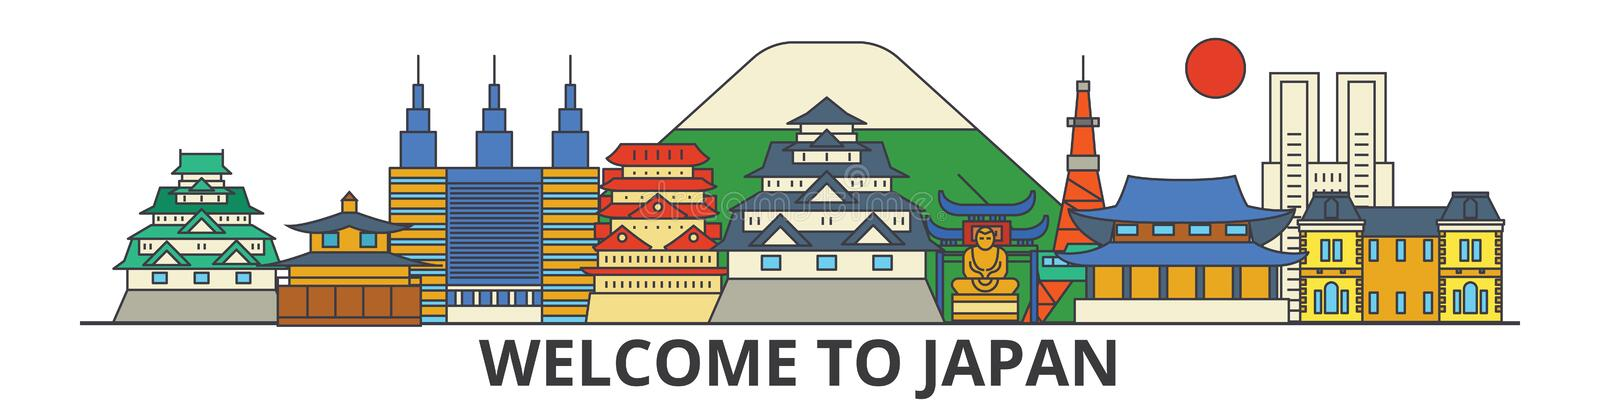 Japan outline skyline, japanese flat thin line icons, landmarks, illustrations. Japan cityscape, japanese travel city. Japan outline skyline, japanese flat thin royalty free illustration